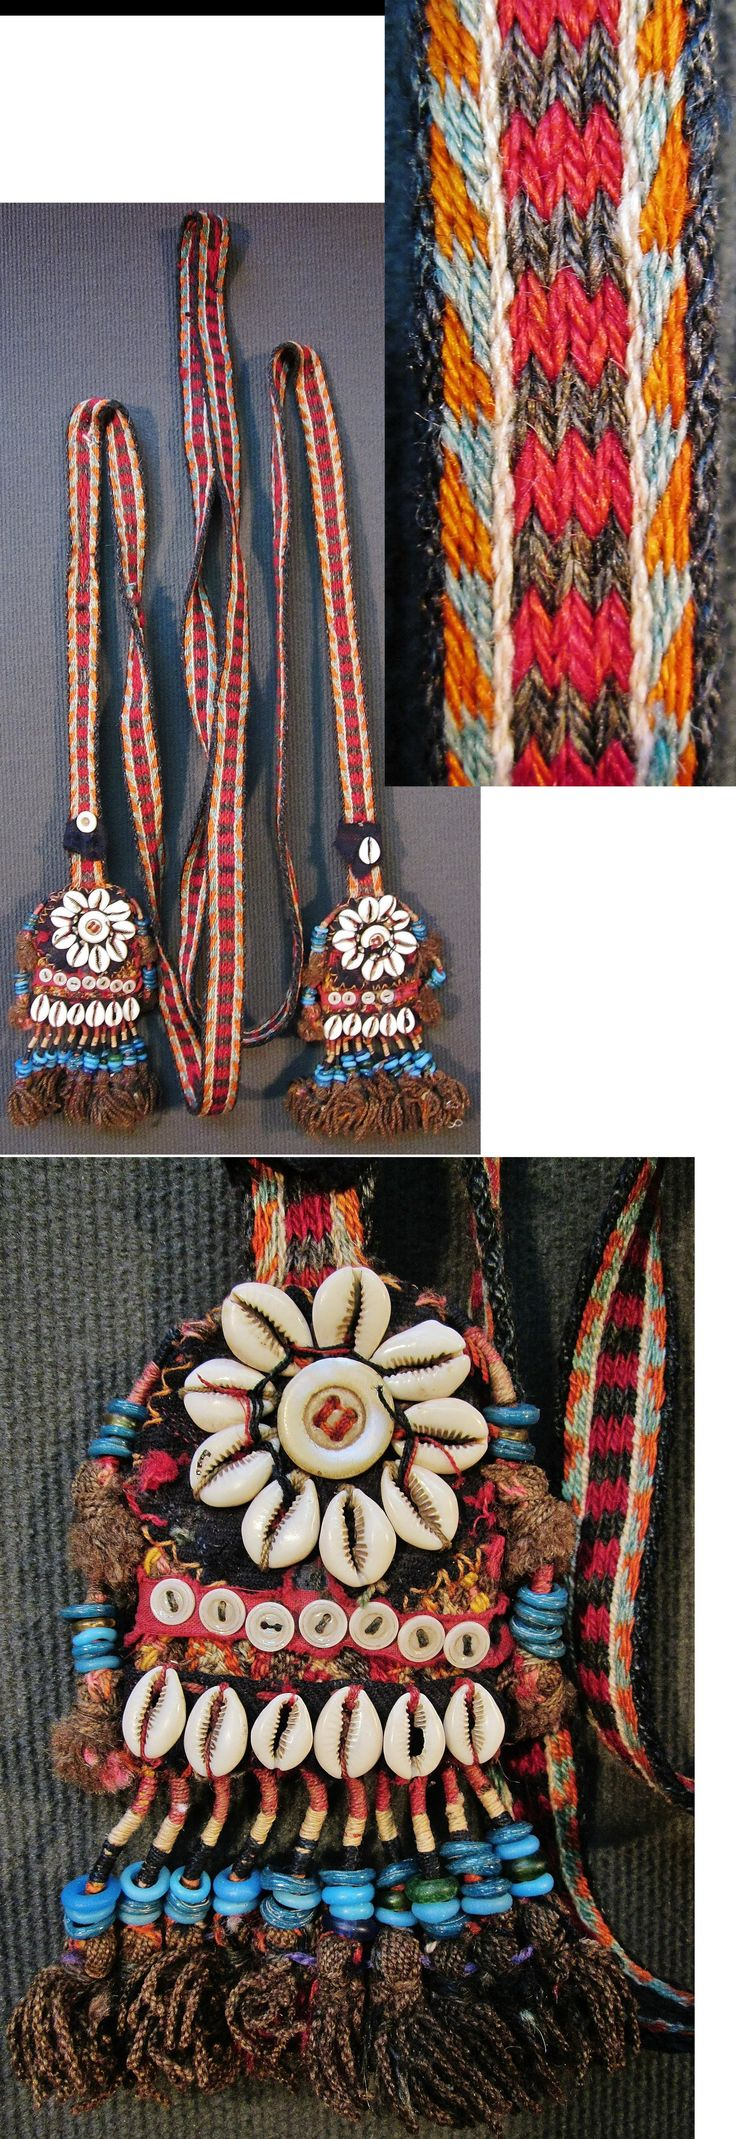 Woollen 'çarpana kemer' (card woven belt) for women, from the Dursunbey district (80 km to the East of Balıkesir), ca. mid-20th century.  Part of the local traditional rural festive costume.  The decorative endings feature cotton fabric, buttons, woollen fringes, blue & green glass rings (some of them of antique - Roman or early Byzantine - origin) and Cypraea shells (called 'deve boncuğu' in Turkey = camel's bead).  (Inv.n° çrp006 - Kavak Costume Collection - Antwerpen/Belgium).